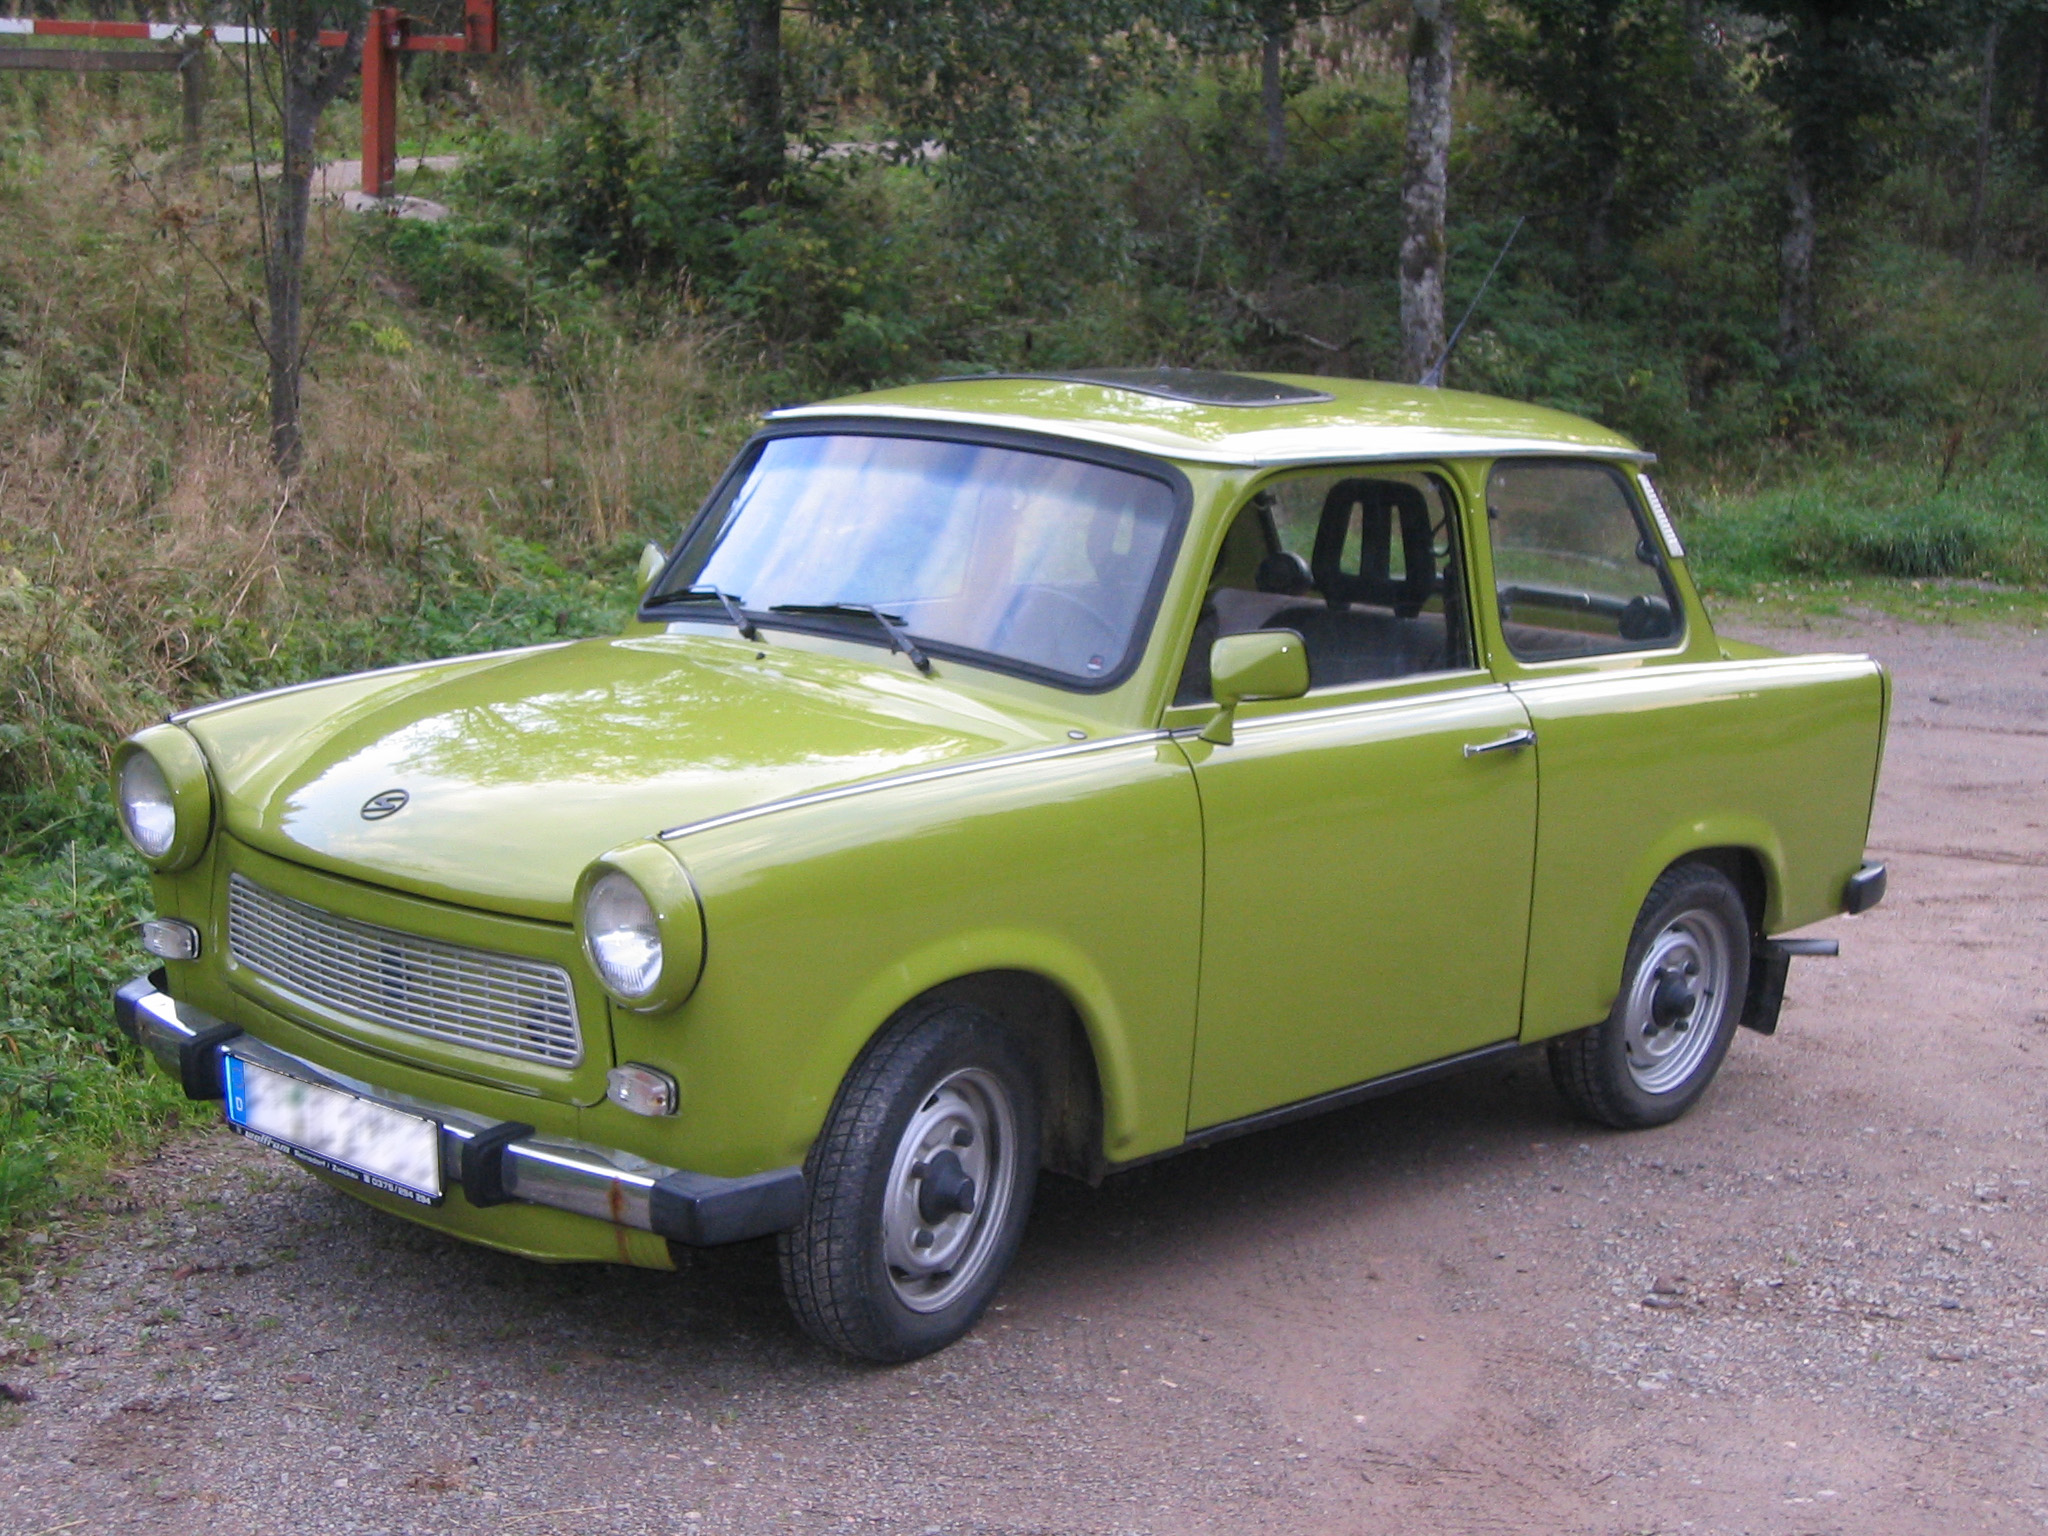 Trabant 601 Backgrounds on Wallpapers Vista